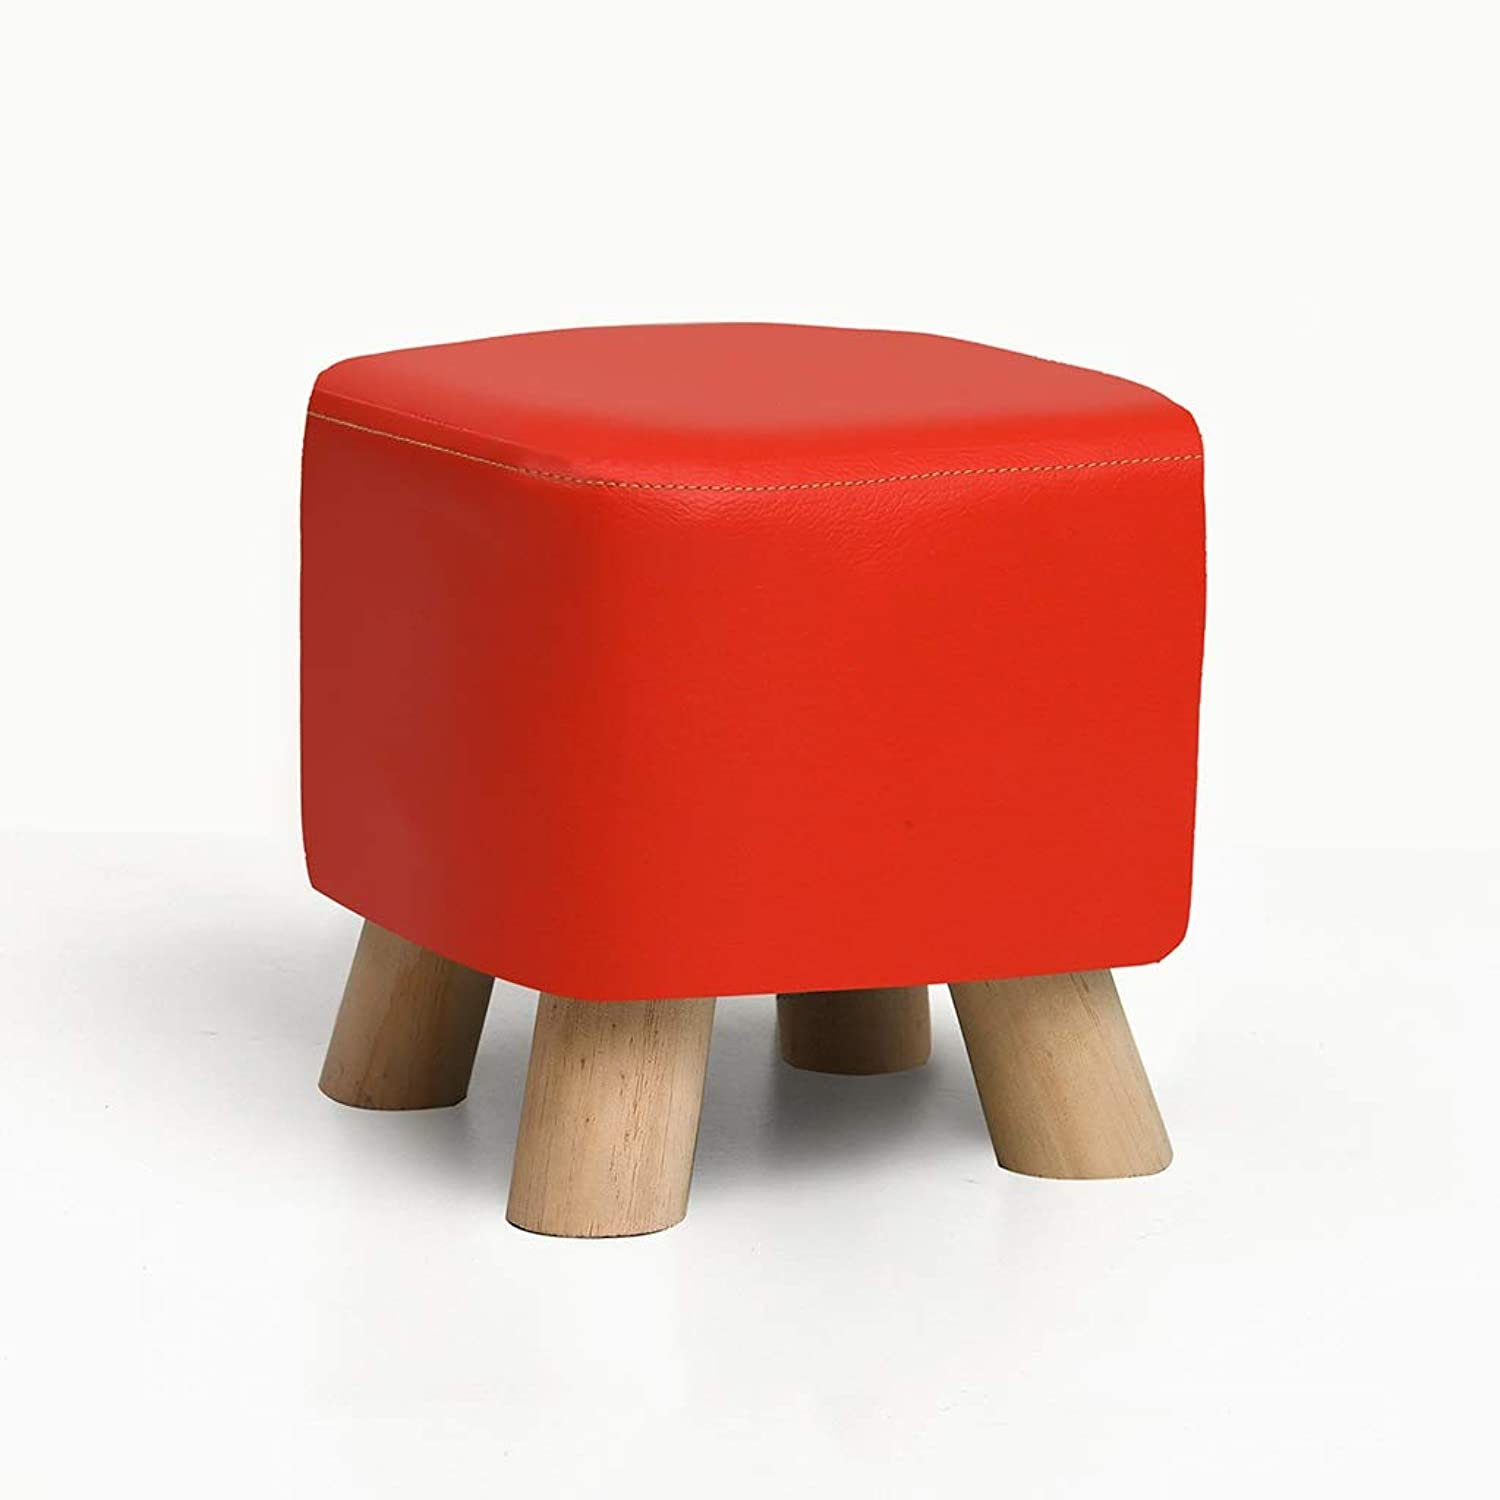 QARYYQ Solid Wood shoes Bench Fashion shoes Stool Creative Square Stool Fabric Stool Stool Sofa Stool Coffee Table Bench Home Stool Small Stool (color   RED)